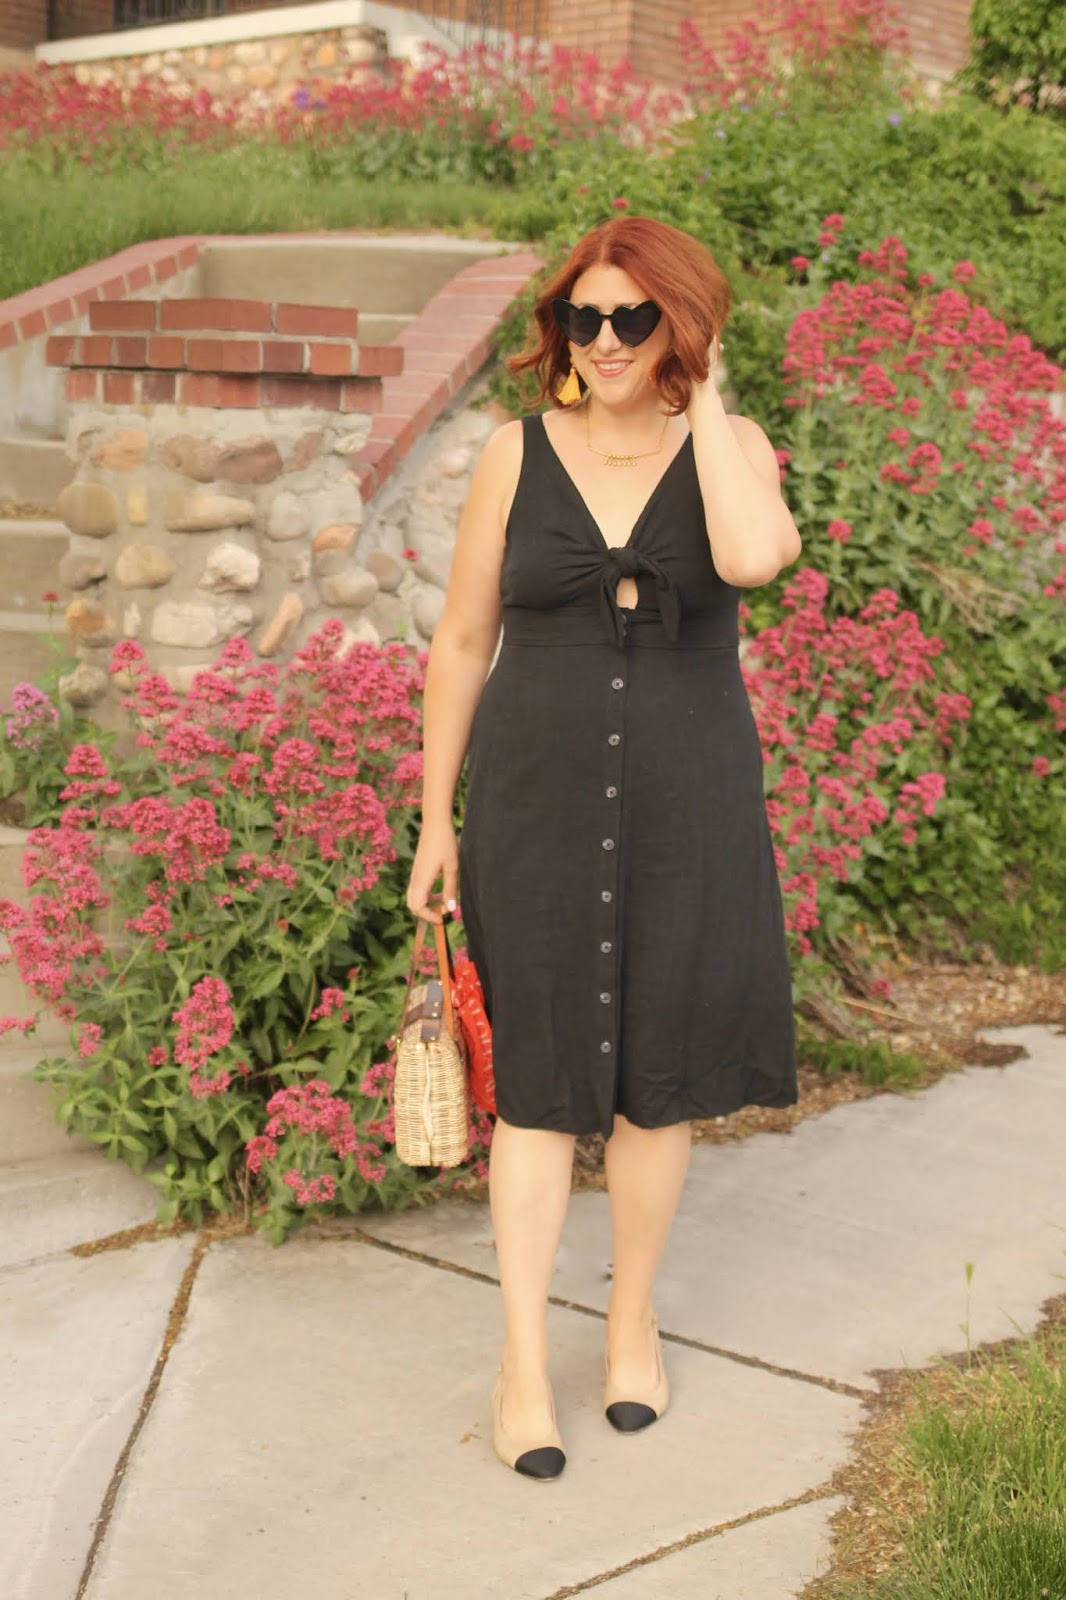 Chanel slingback dupes, summer dress, tie front detail, vintage straw bag, tassel earrings, red hair